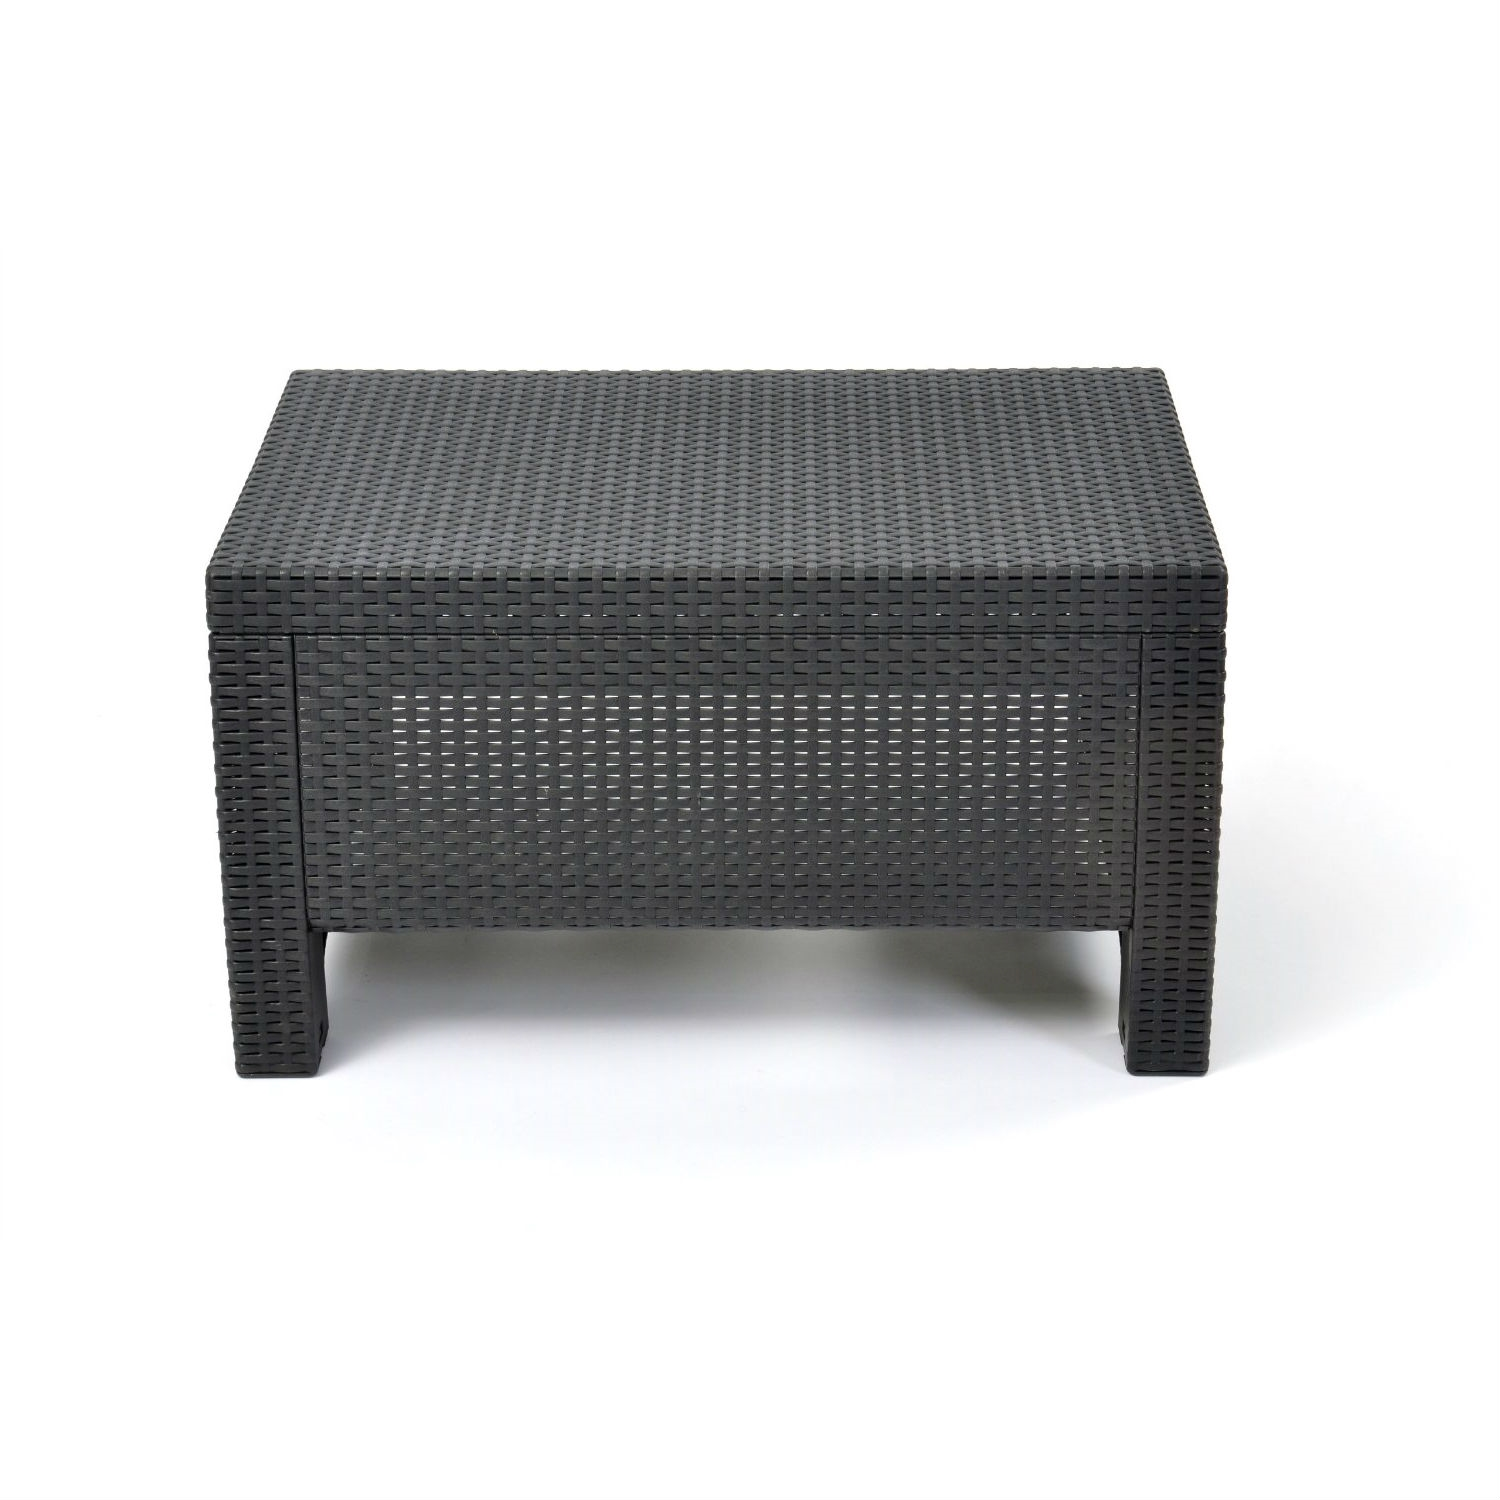 Outstanding Contemporary Outdoor Coffee Table In Durable Black Plastic Rattan Dailytribune Chair Design For Home Dailytribuneorg